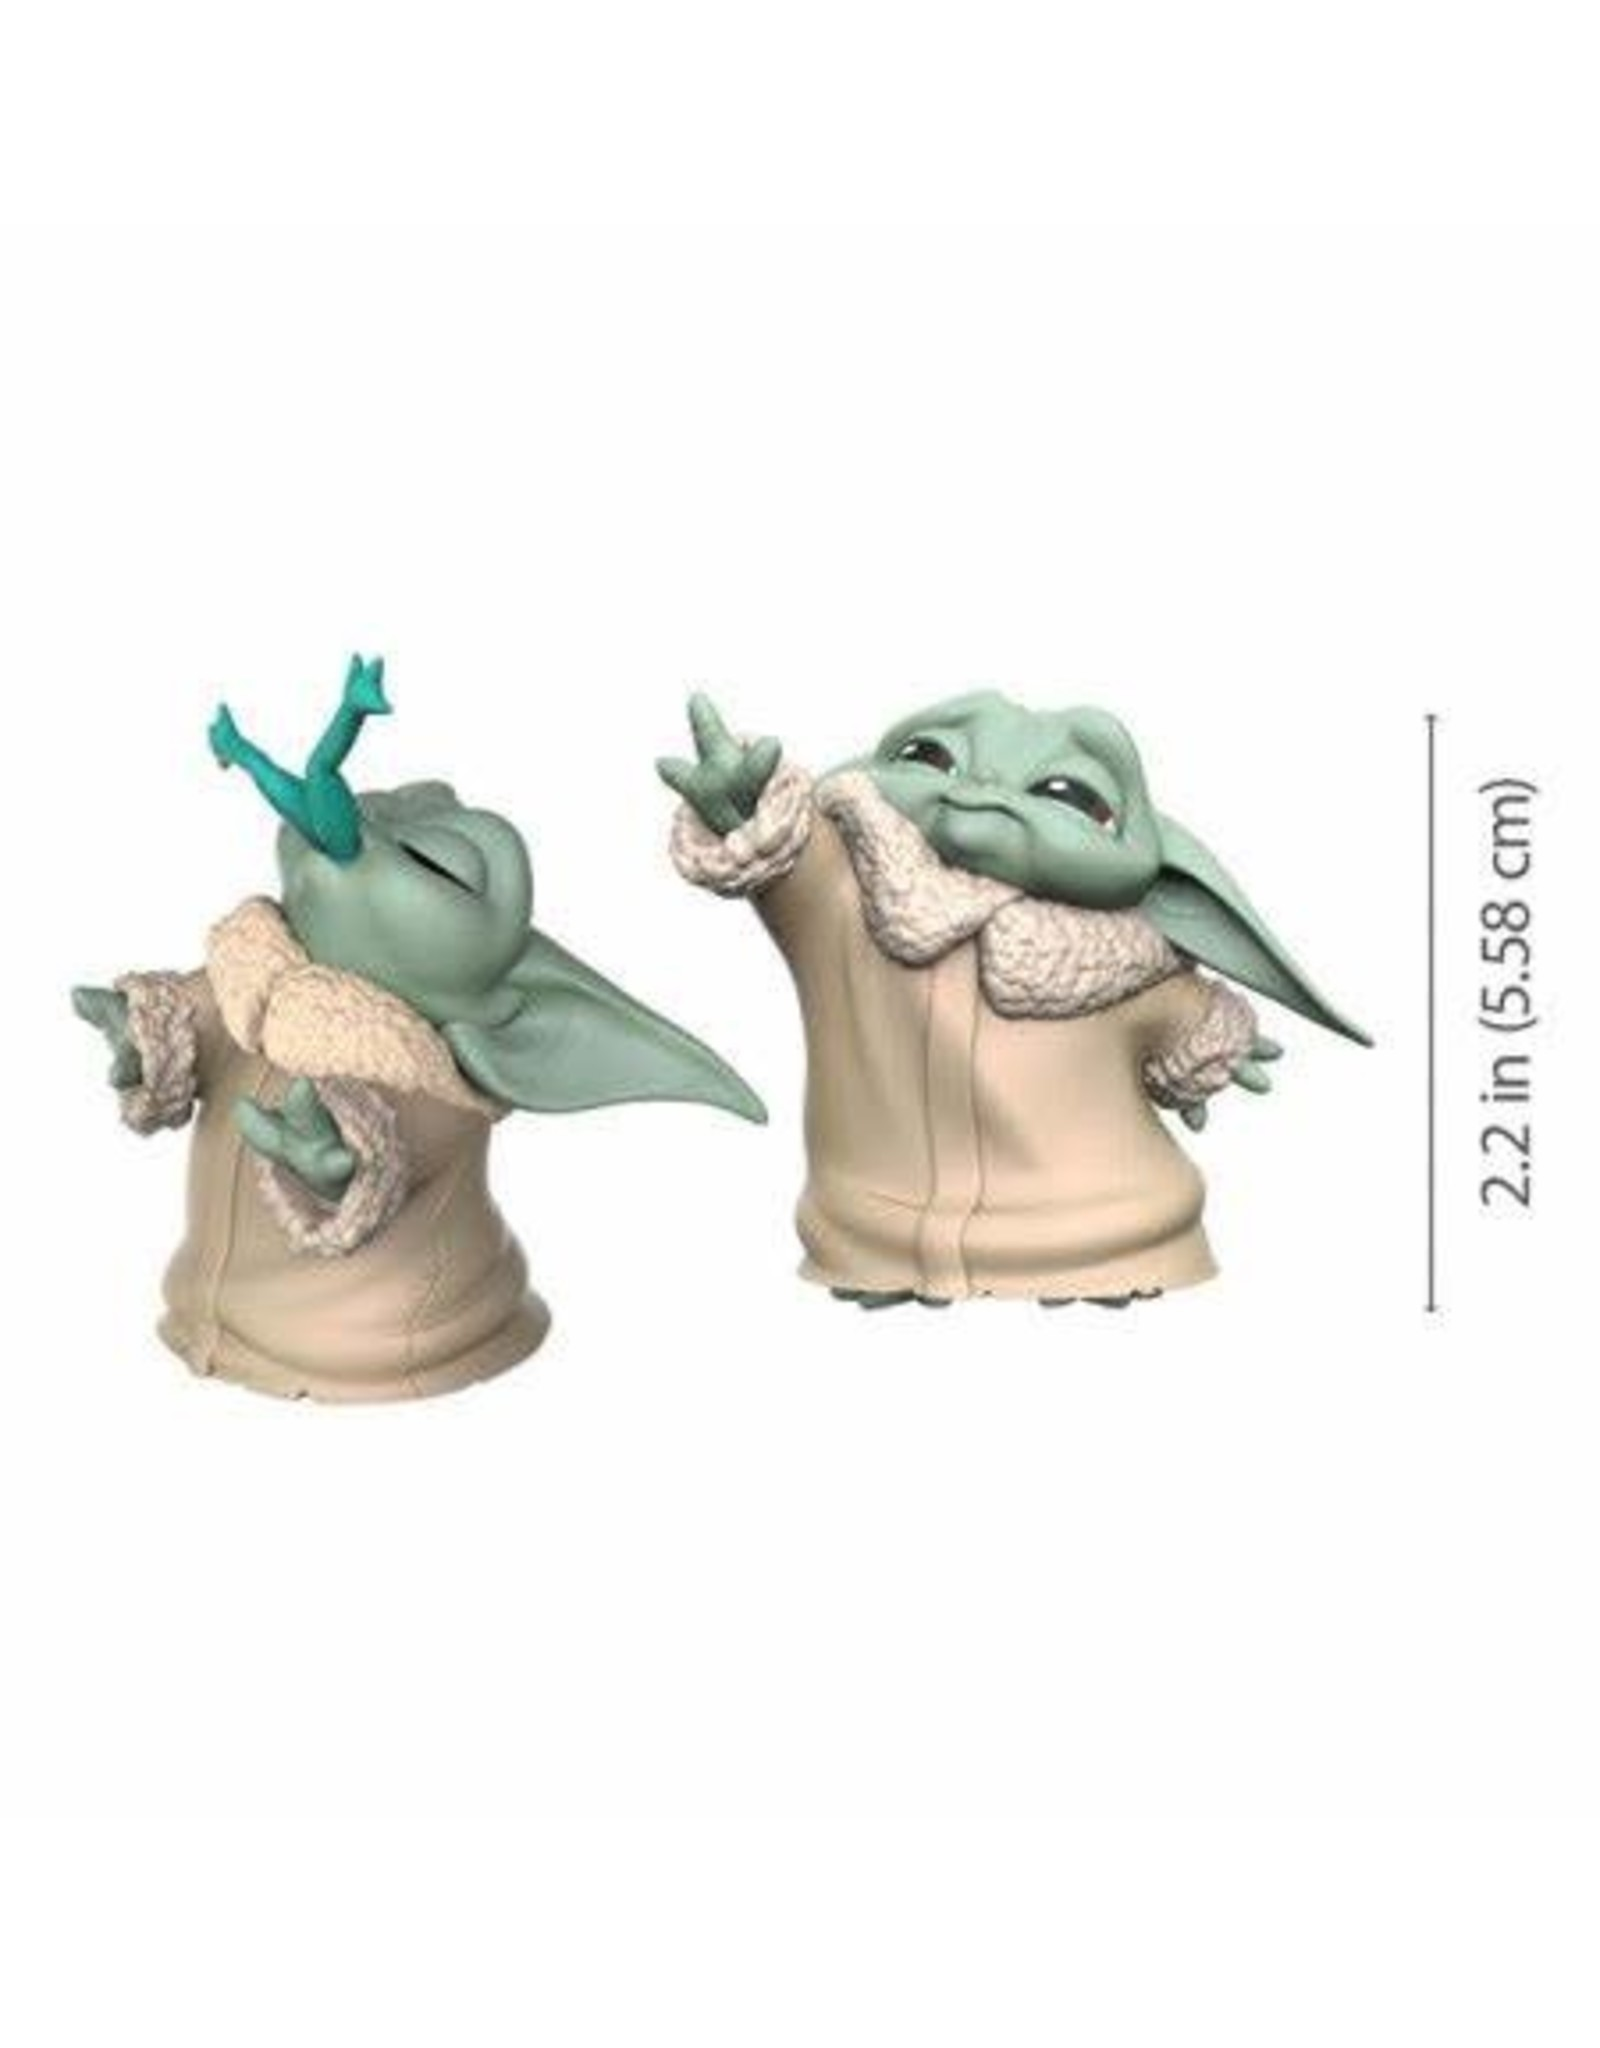 Hasbro STAR WARS Bounty Collection 2-Pack 5.5cm - Mandalorian: The Child Force & Frog